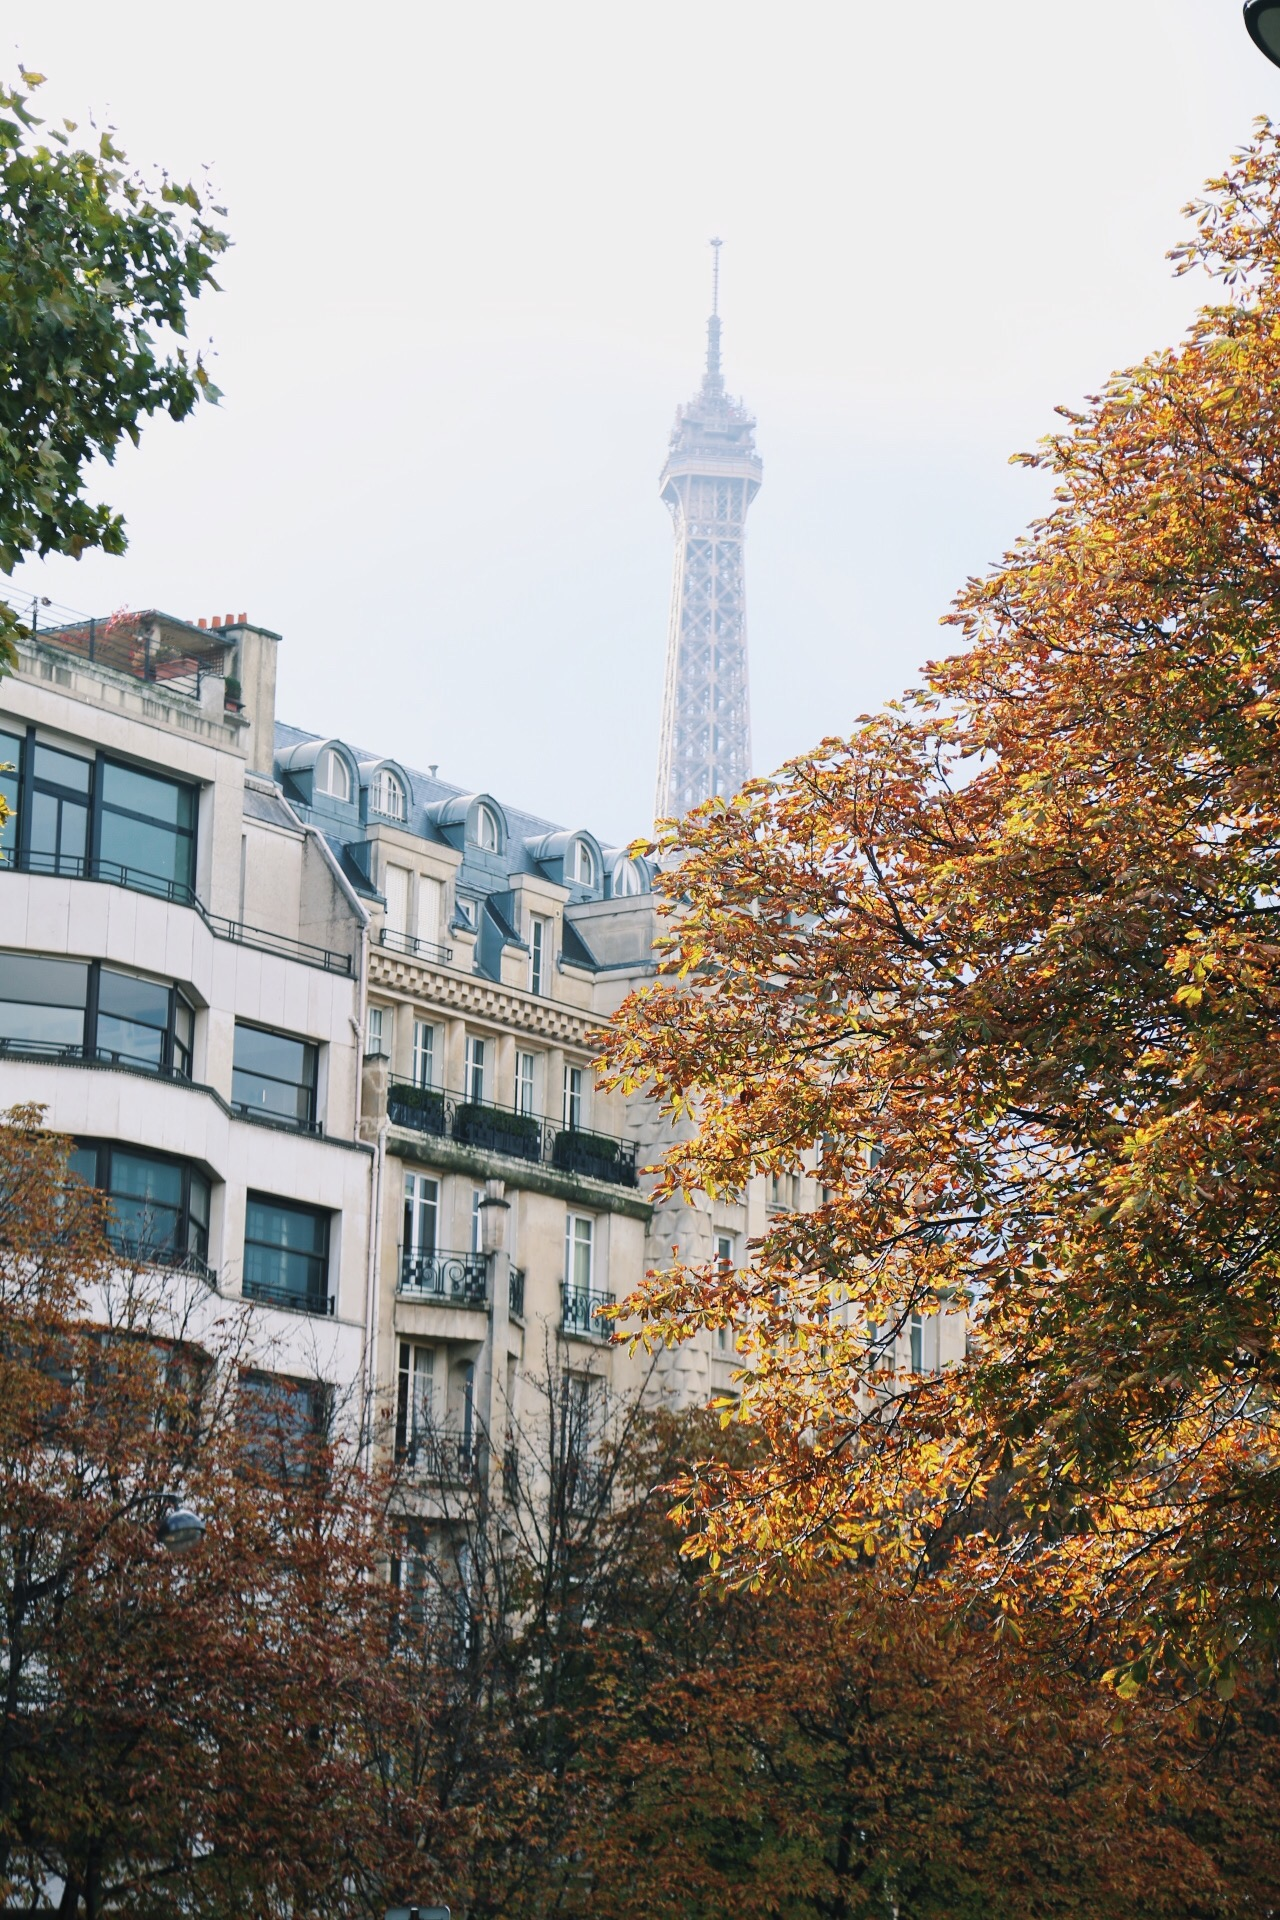 10 Photos To Inspire You To Visit Paris This Fall